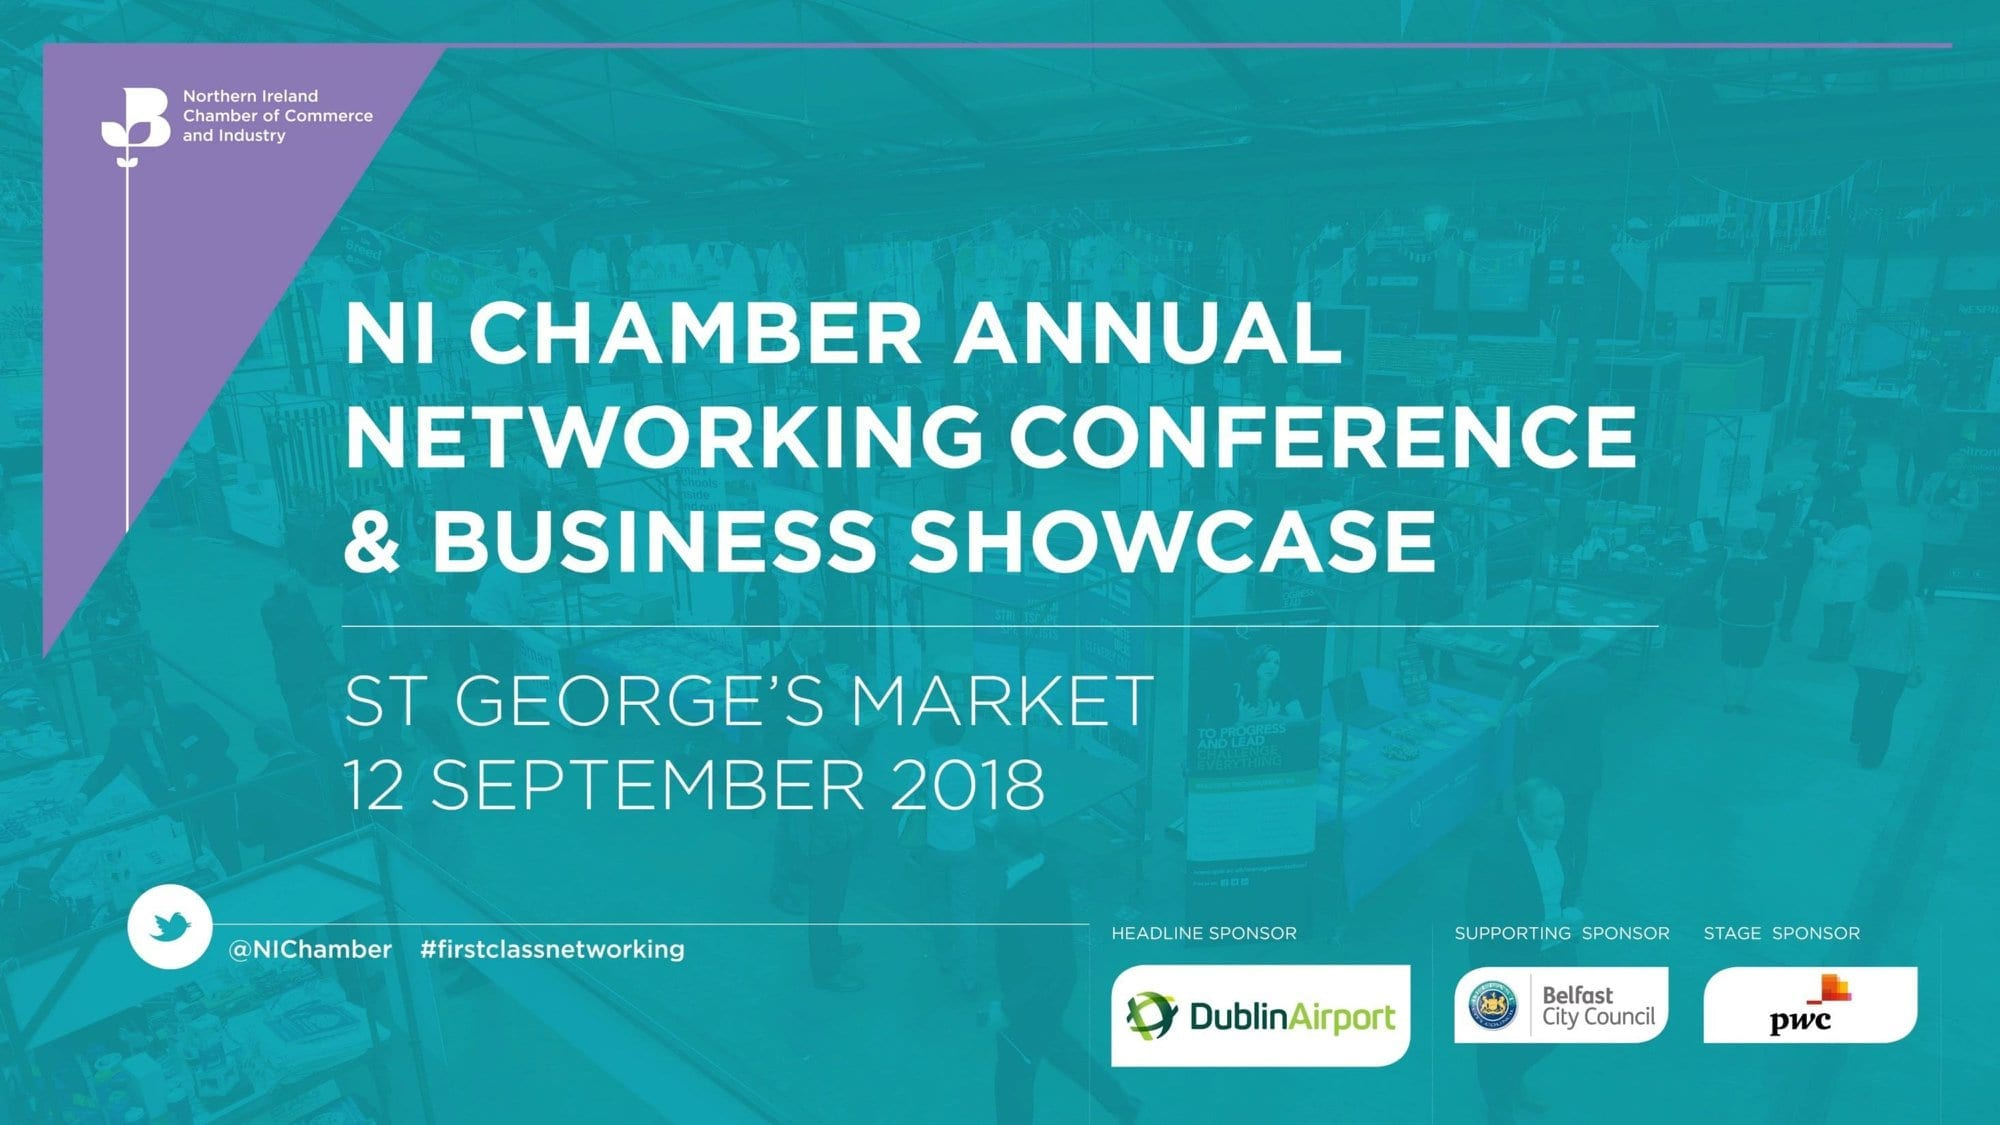 NI chamber annual networking conference & business showcase